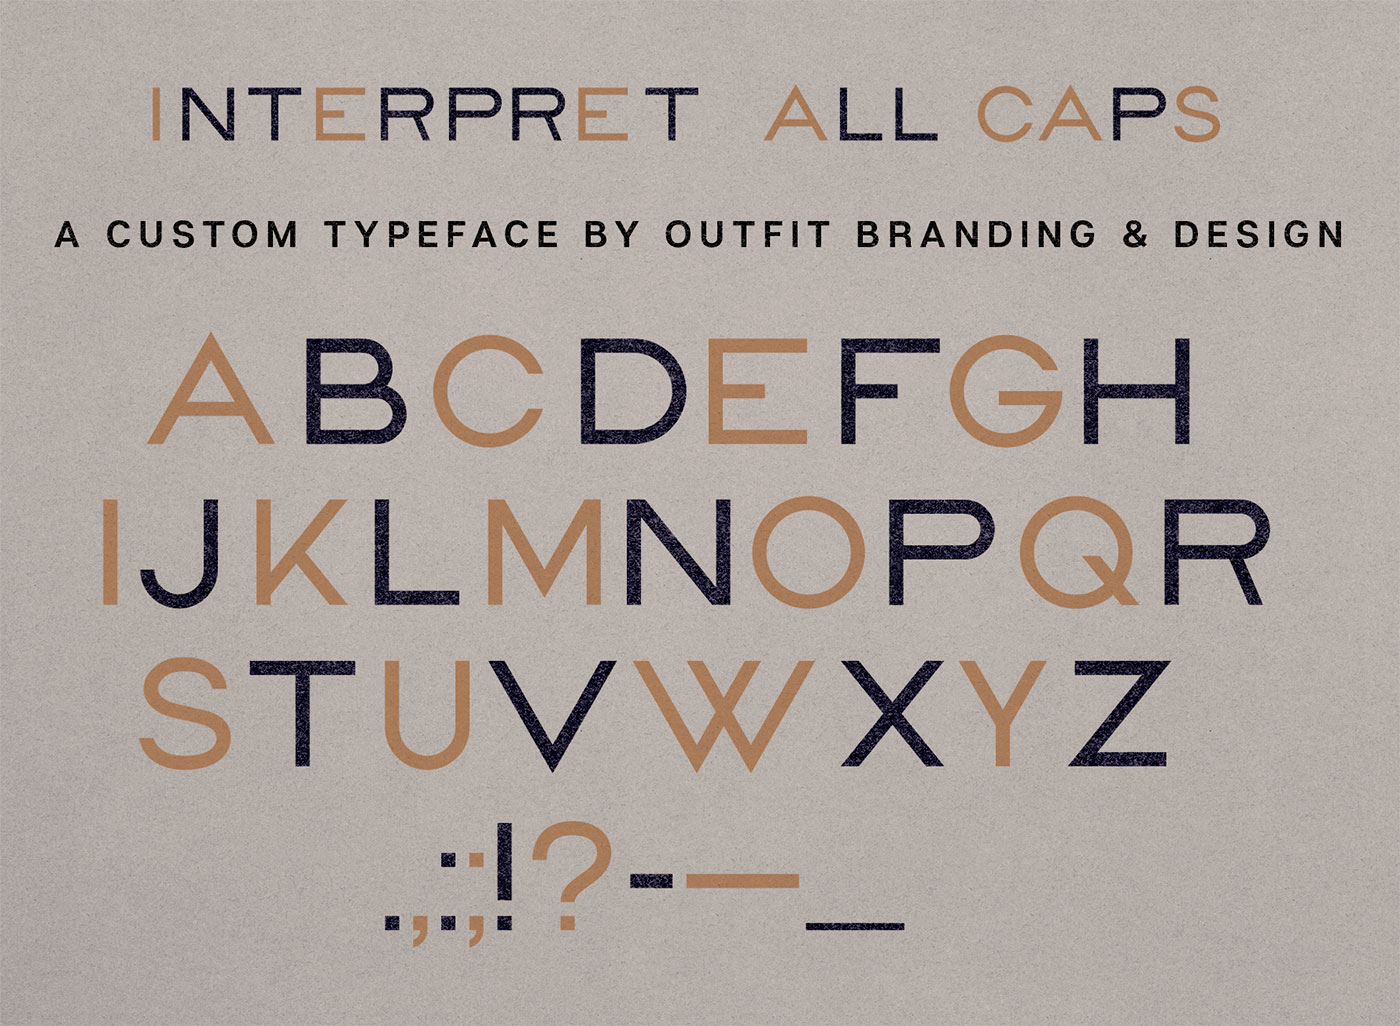 Outfit Branding & Design Path Law Custom Typography Interpret